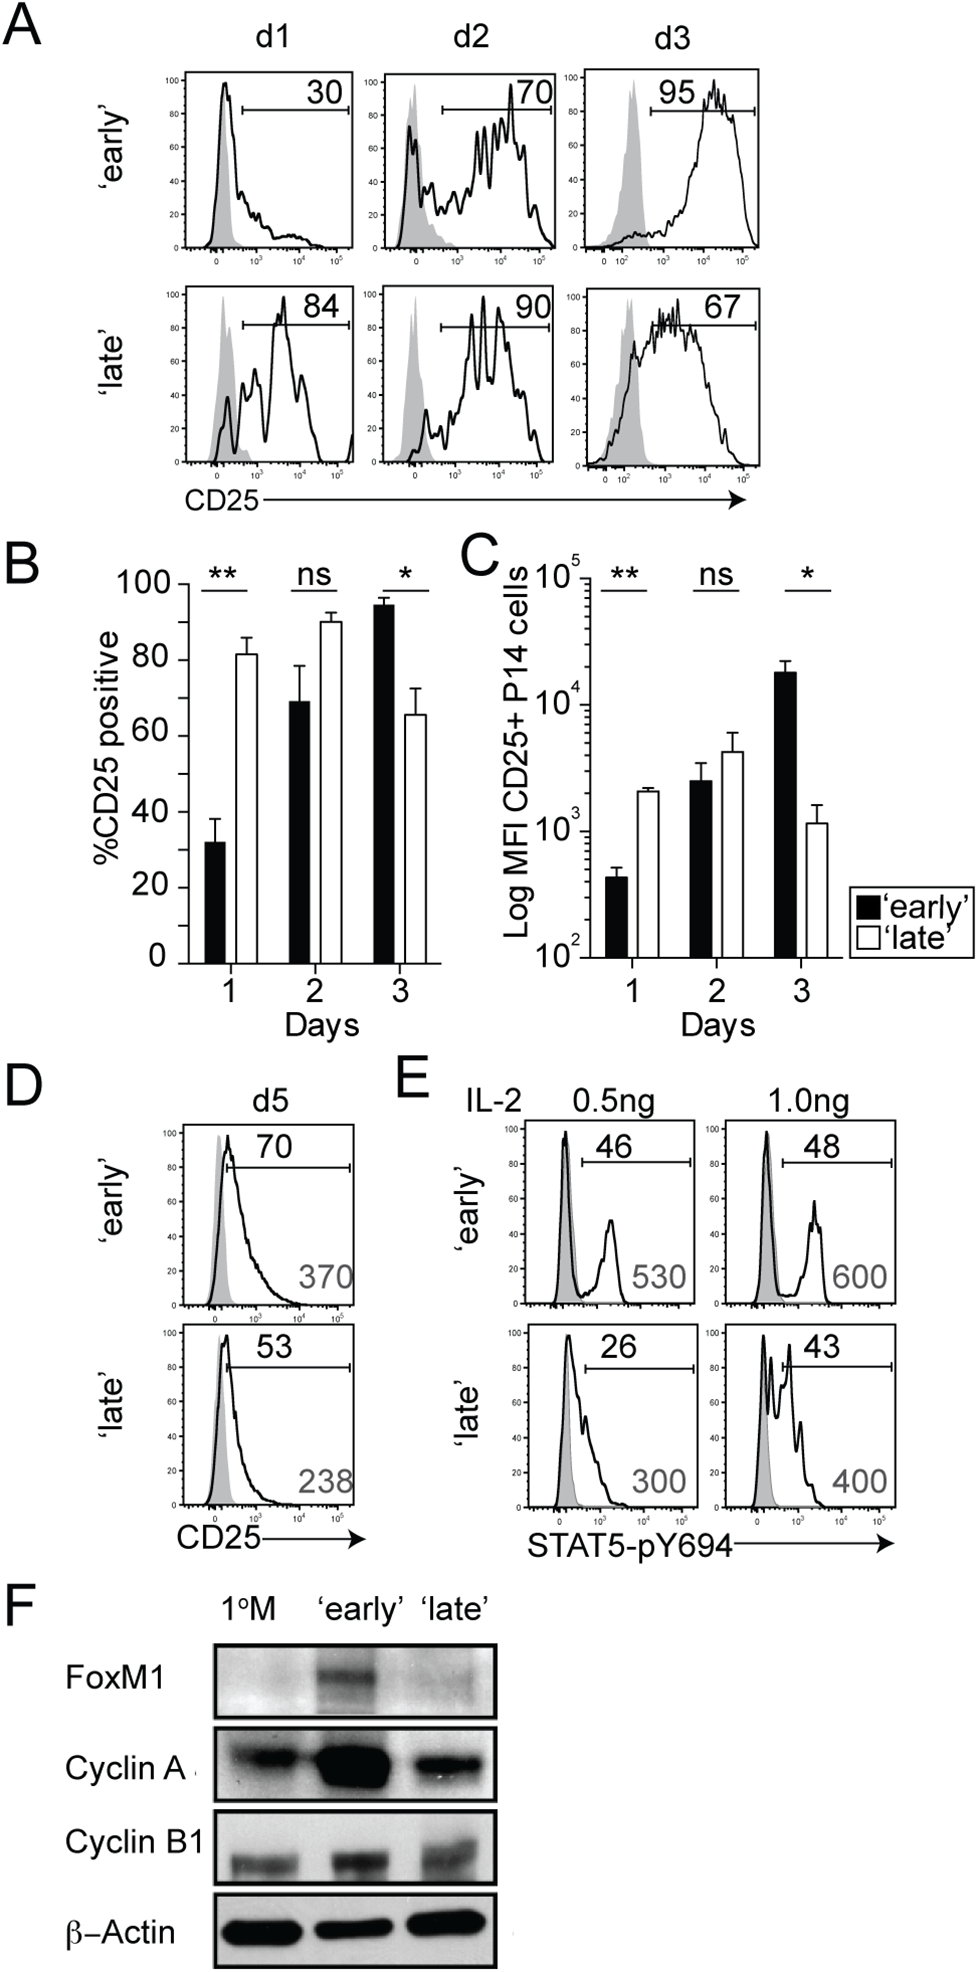 The timing of stimulation regulates IL-2 sensitivity and expression of cell-cycle related proteins.